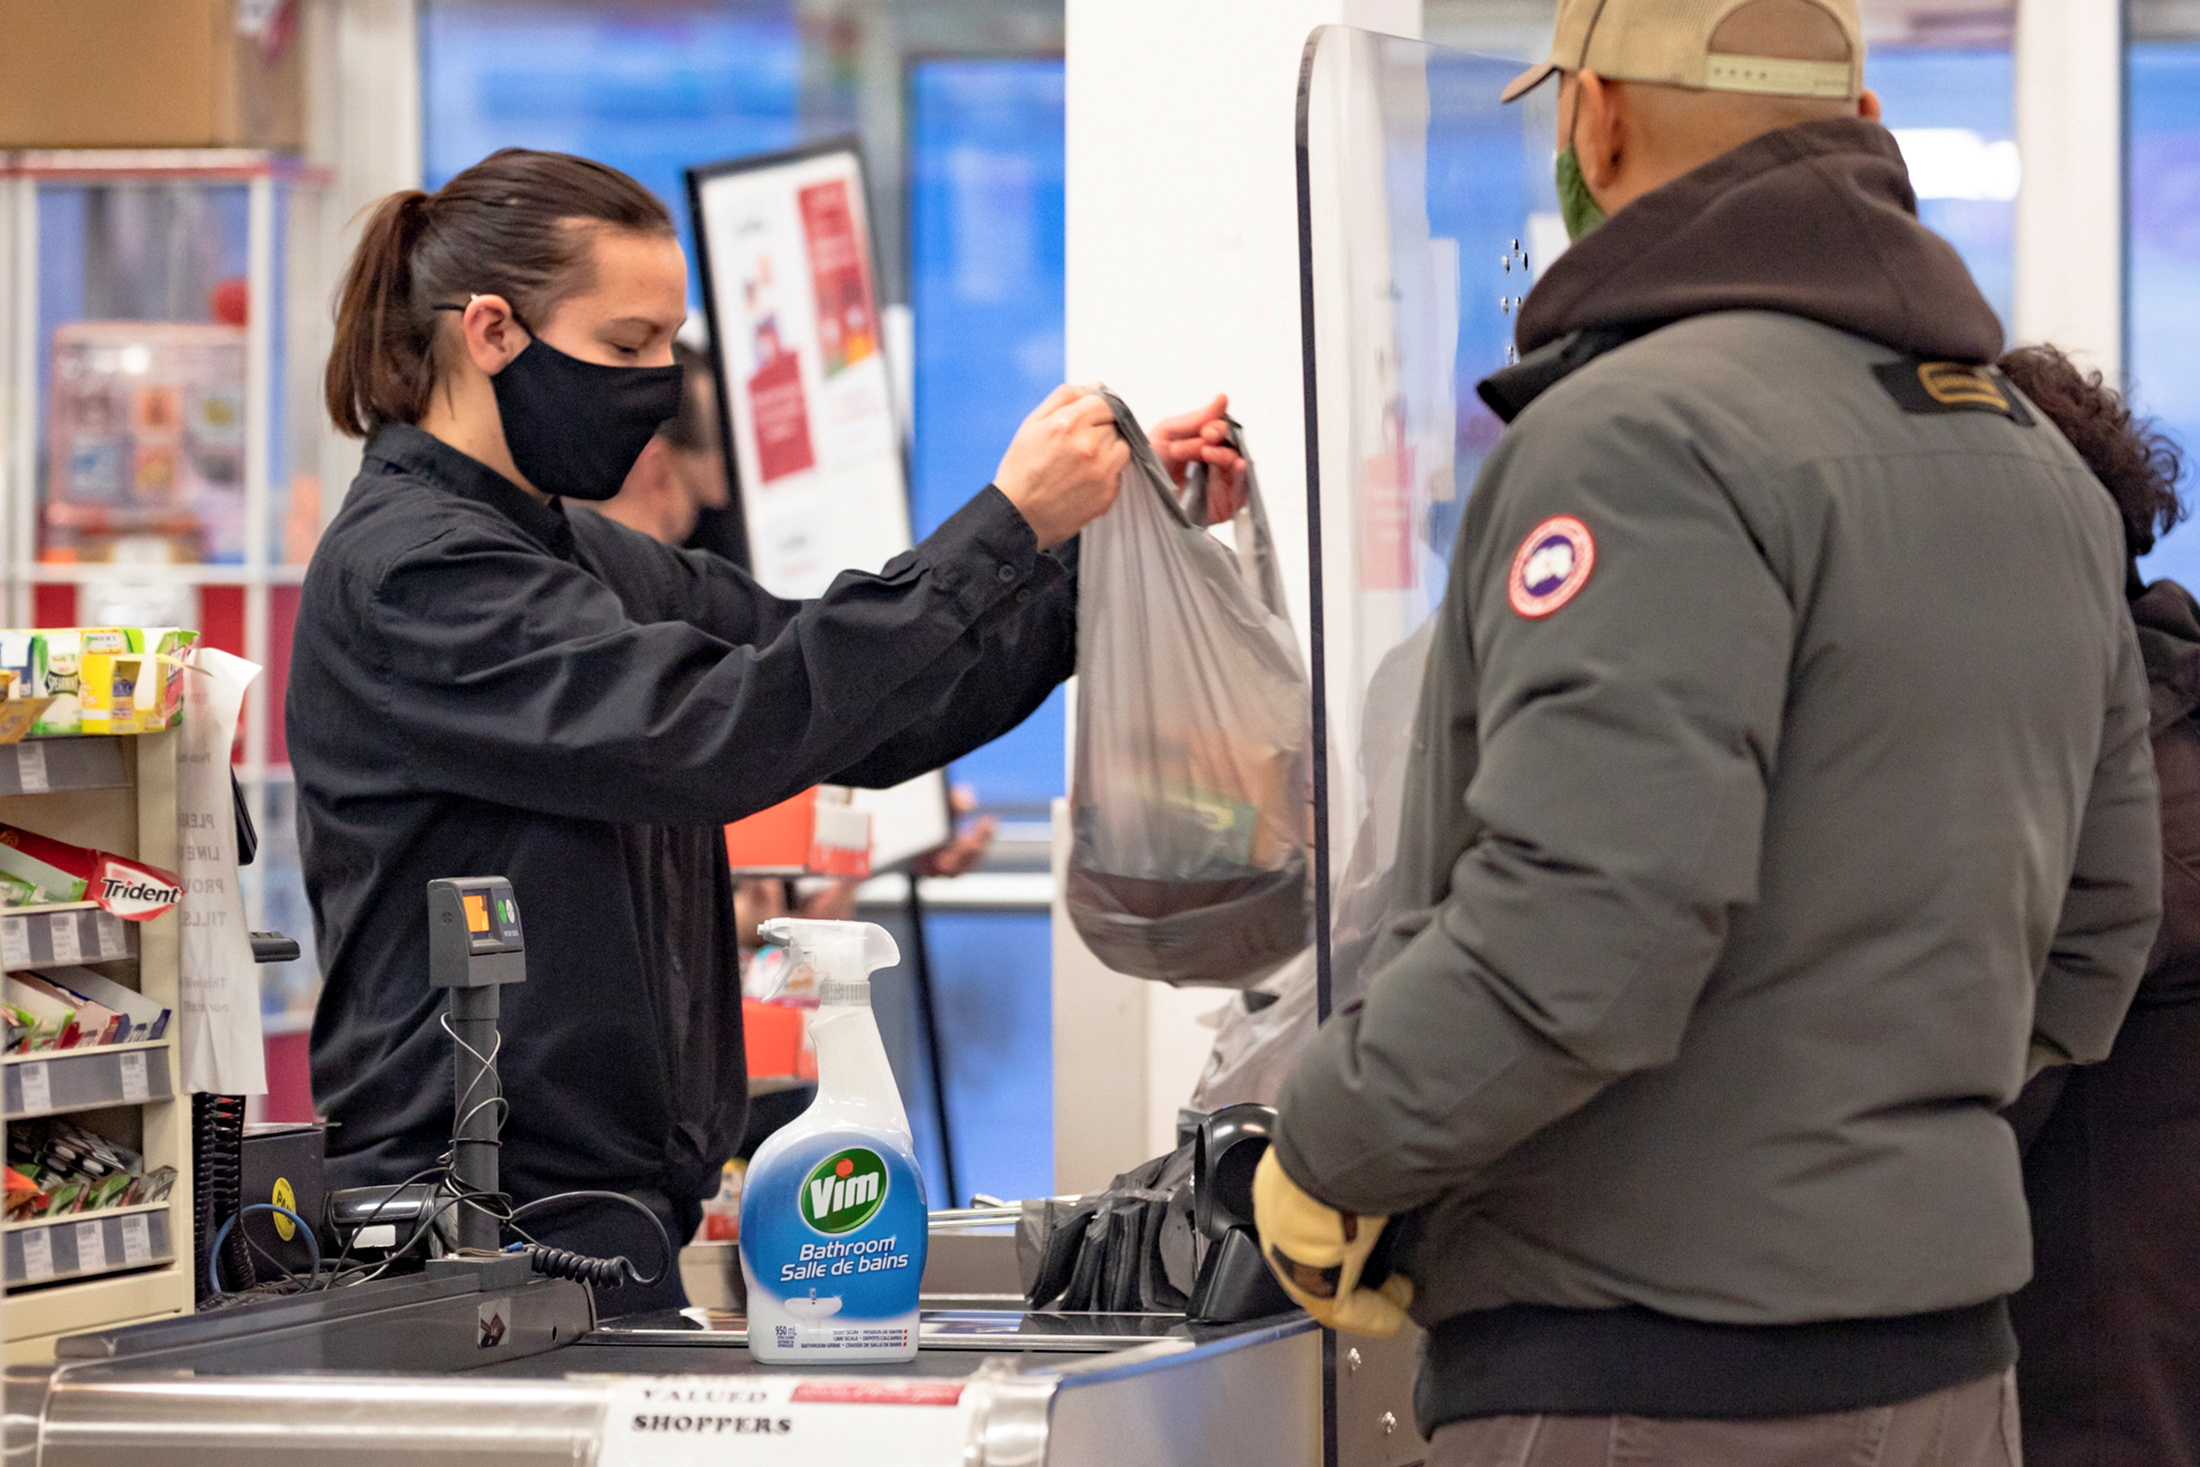 A cashier wearing a mask to help slow the spread of coronavirus disease (COVID-19) bags groceries as the territory of Nunavut enters a two week mandatory restriction period in Iqaluit, Nunavut, Canada November 18, 2020.  REUTERS/Natalie Maerzluft/File Photo